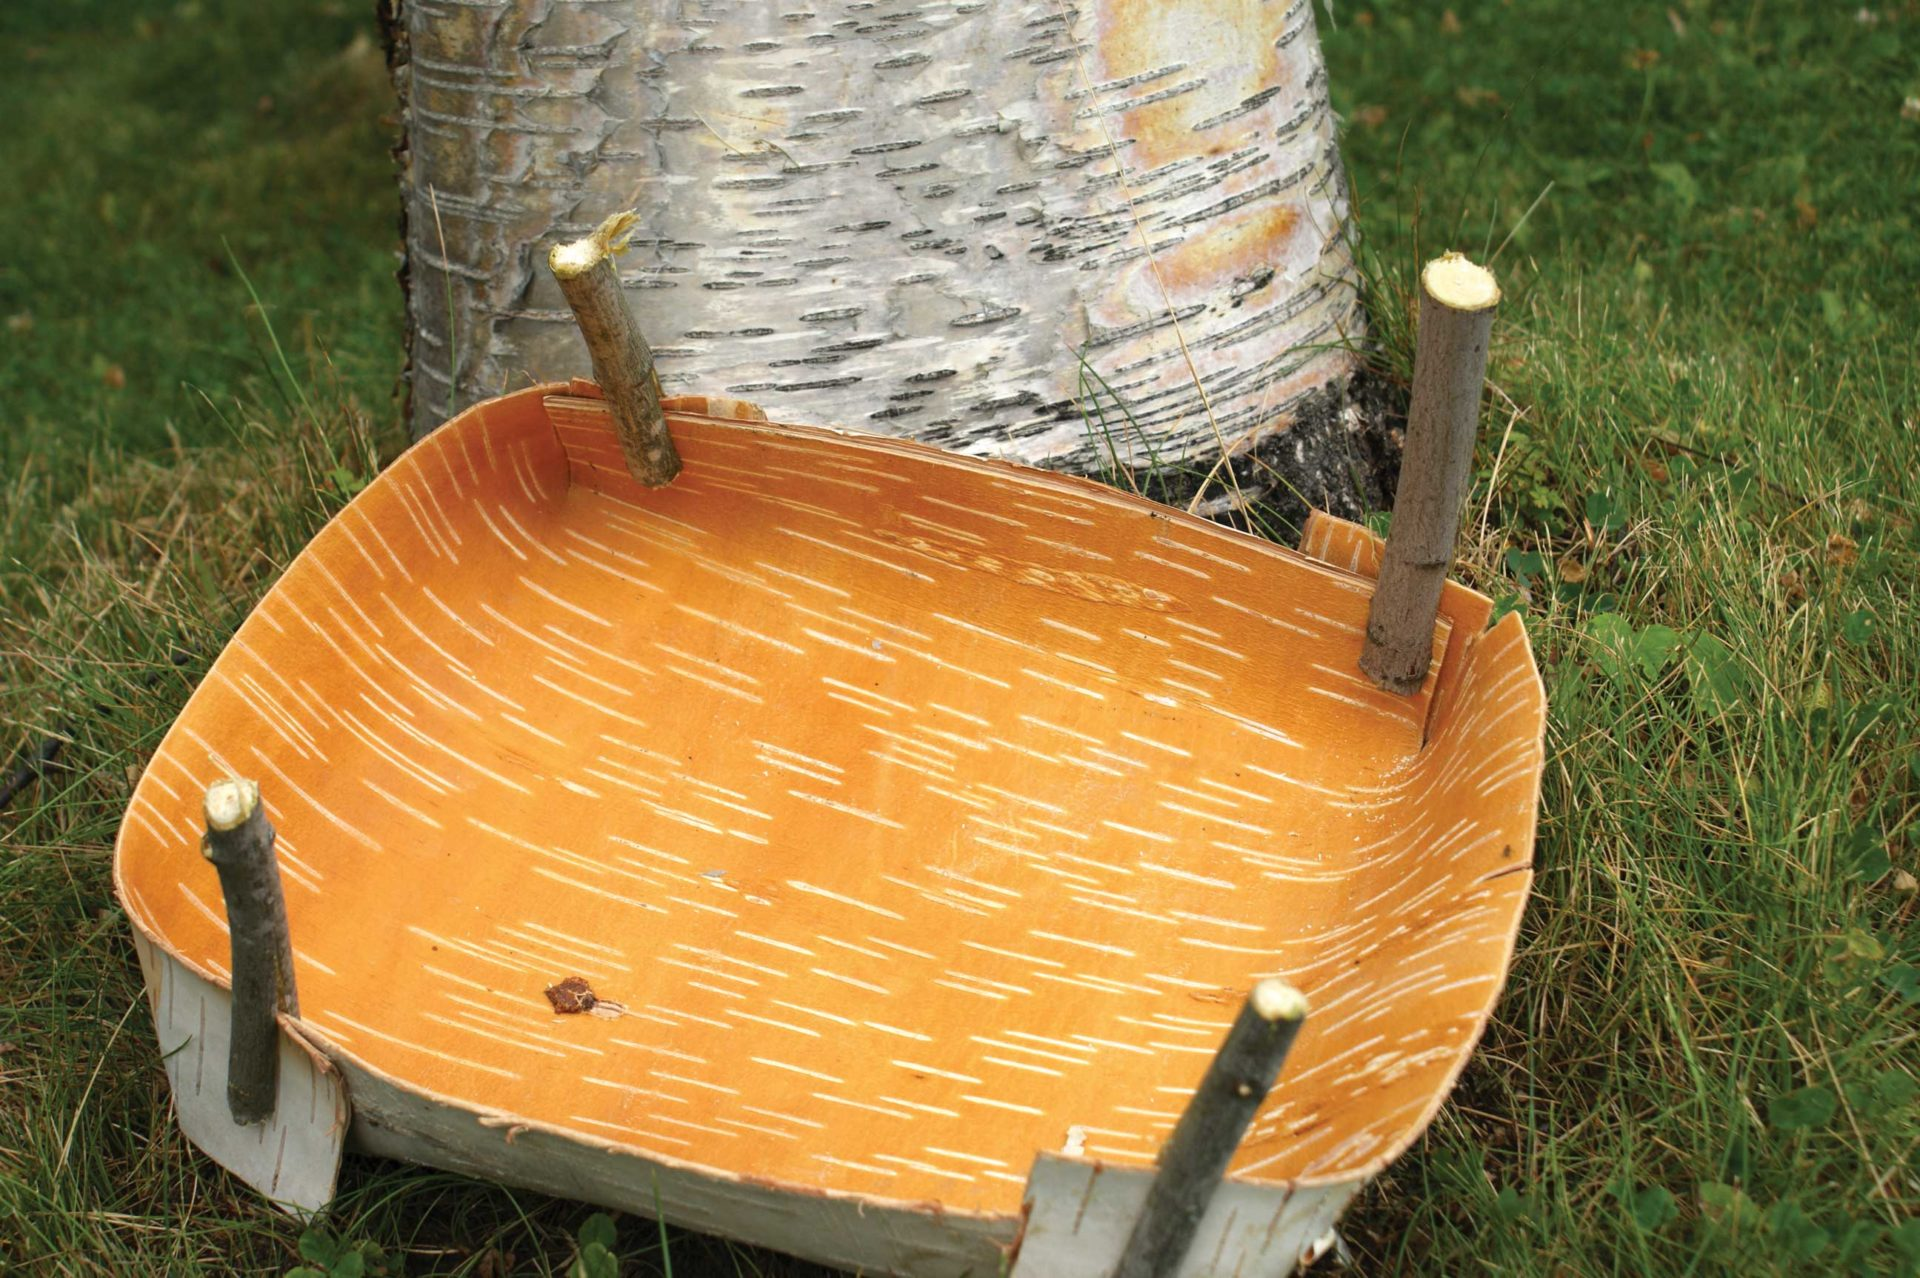 How To Make A Birch Bark Cooking Vessel